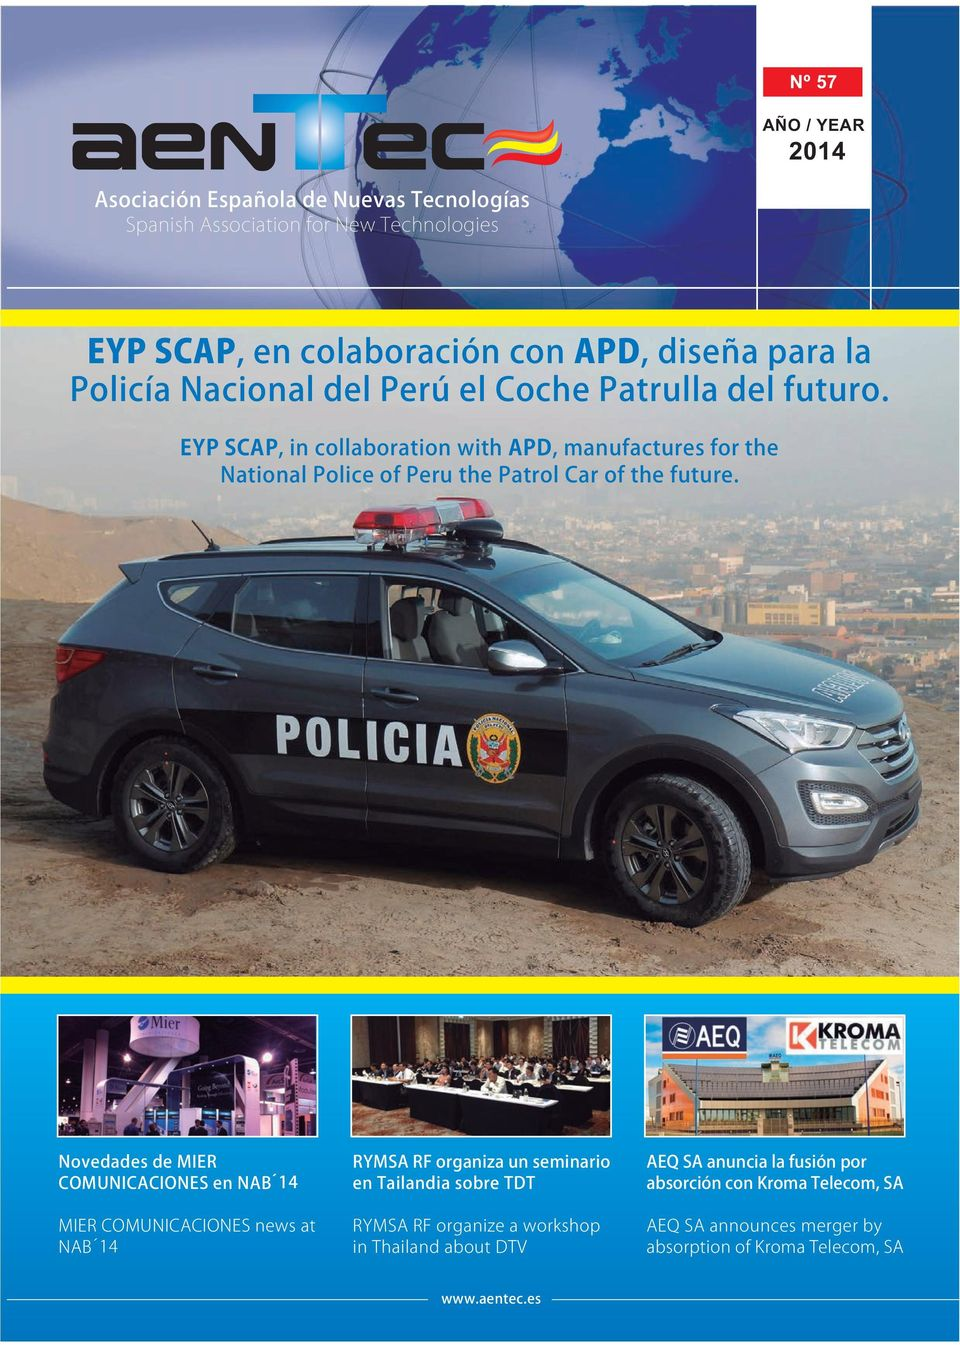 EYP SCAP, in collaboration with APD, manufactures for the National Police of Peru the Patrol Car of the future.